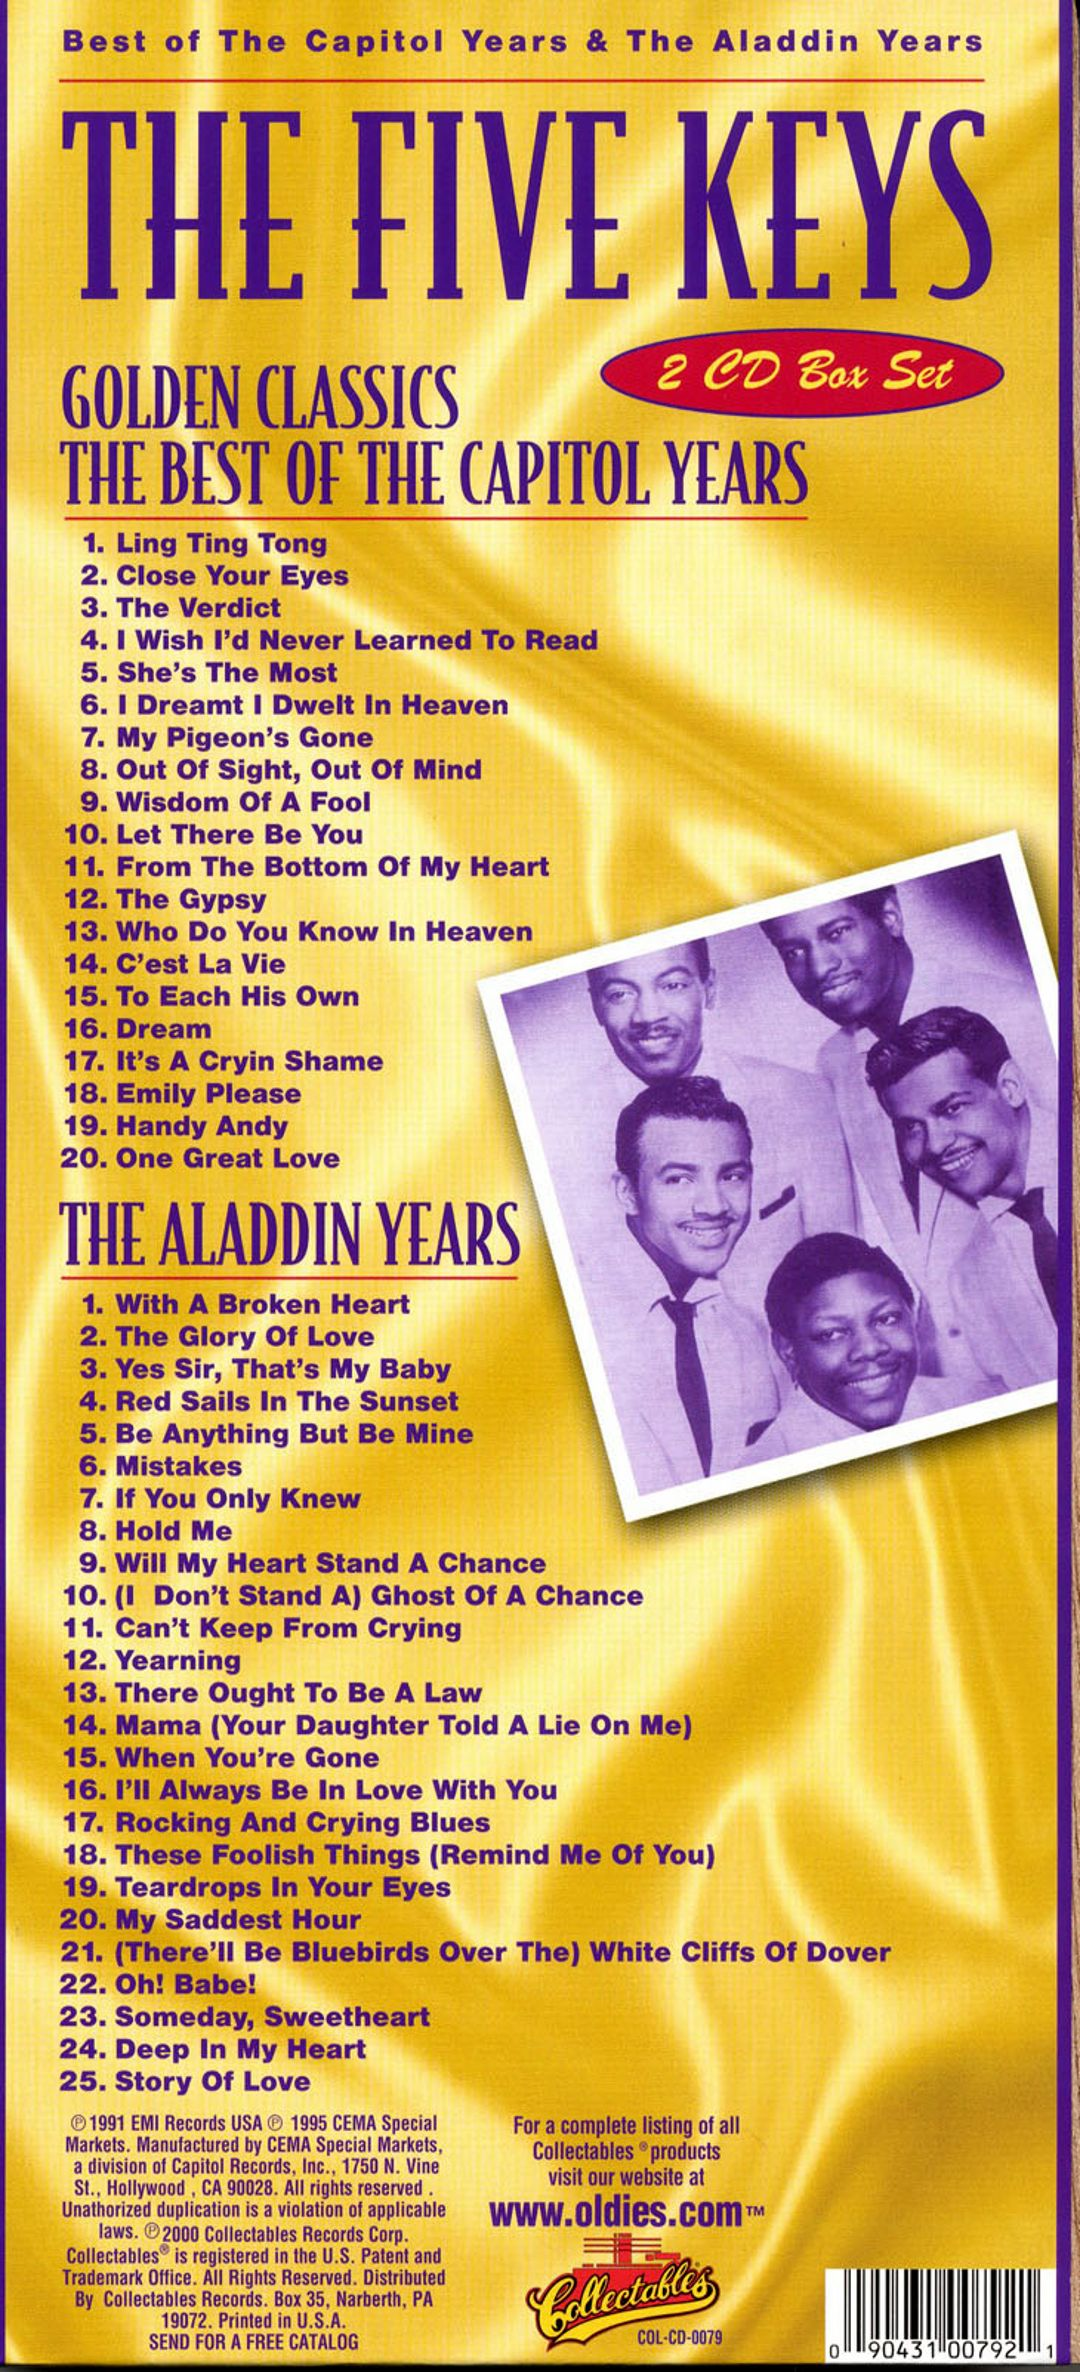 Best of the Capitol and the Aladdin Years